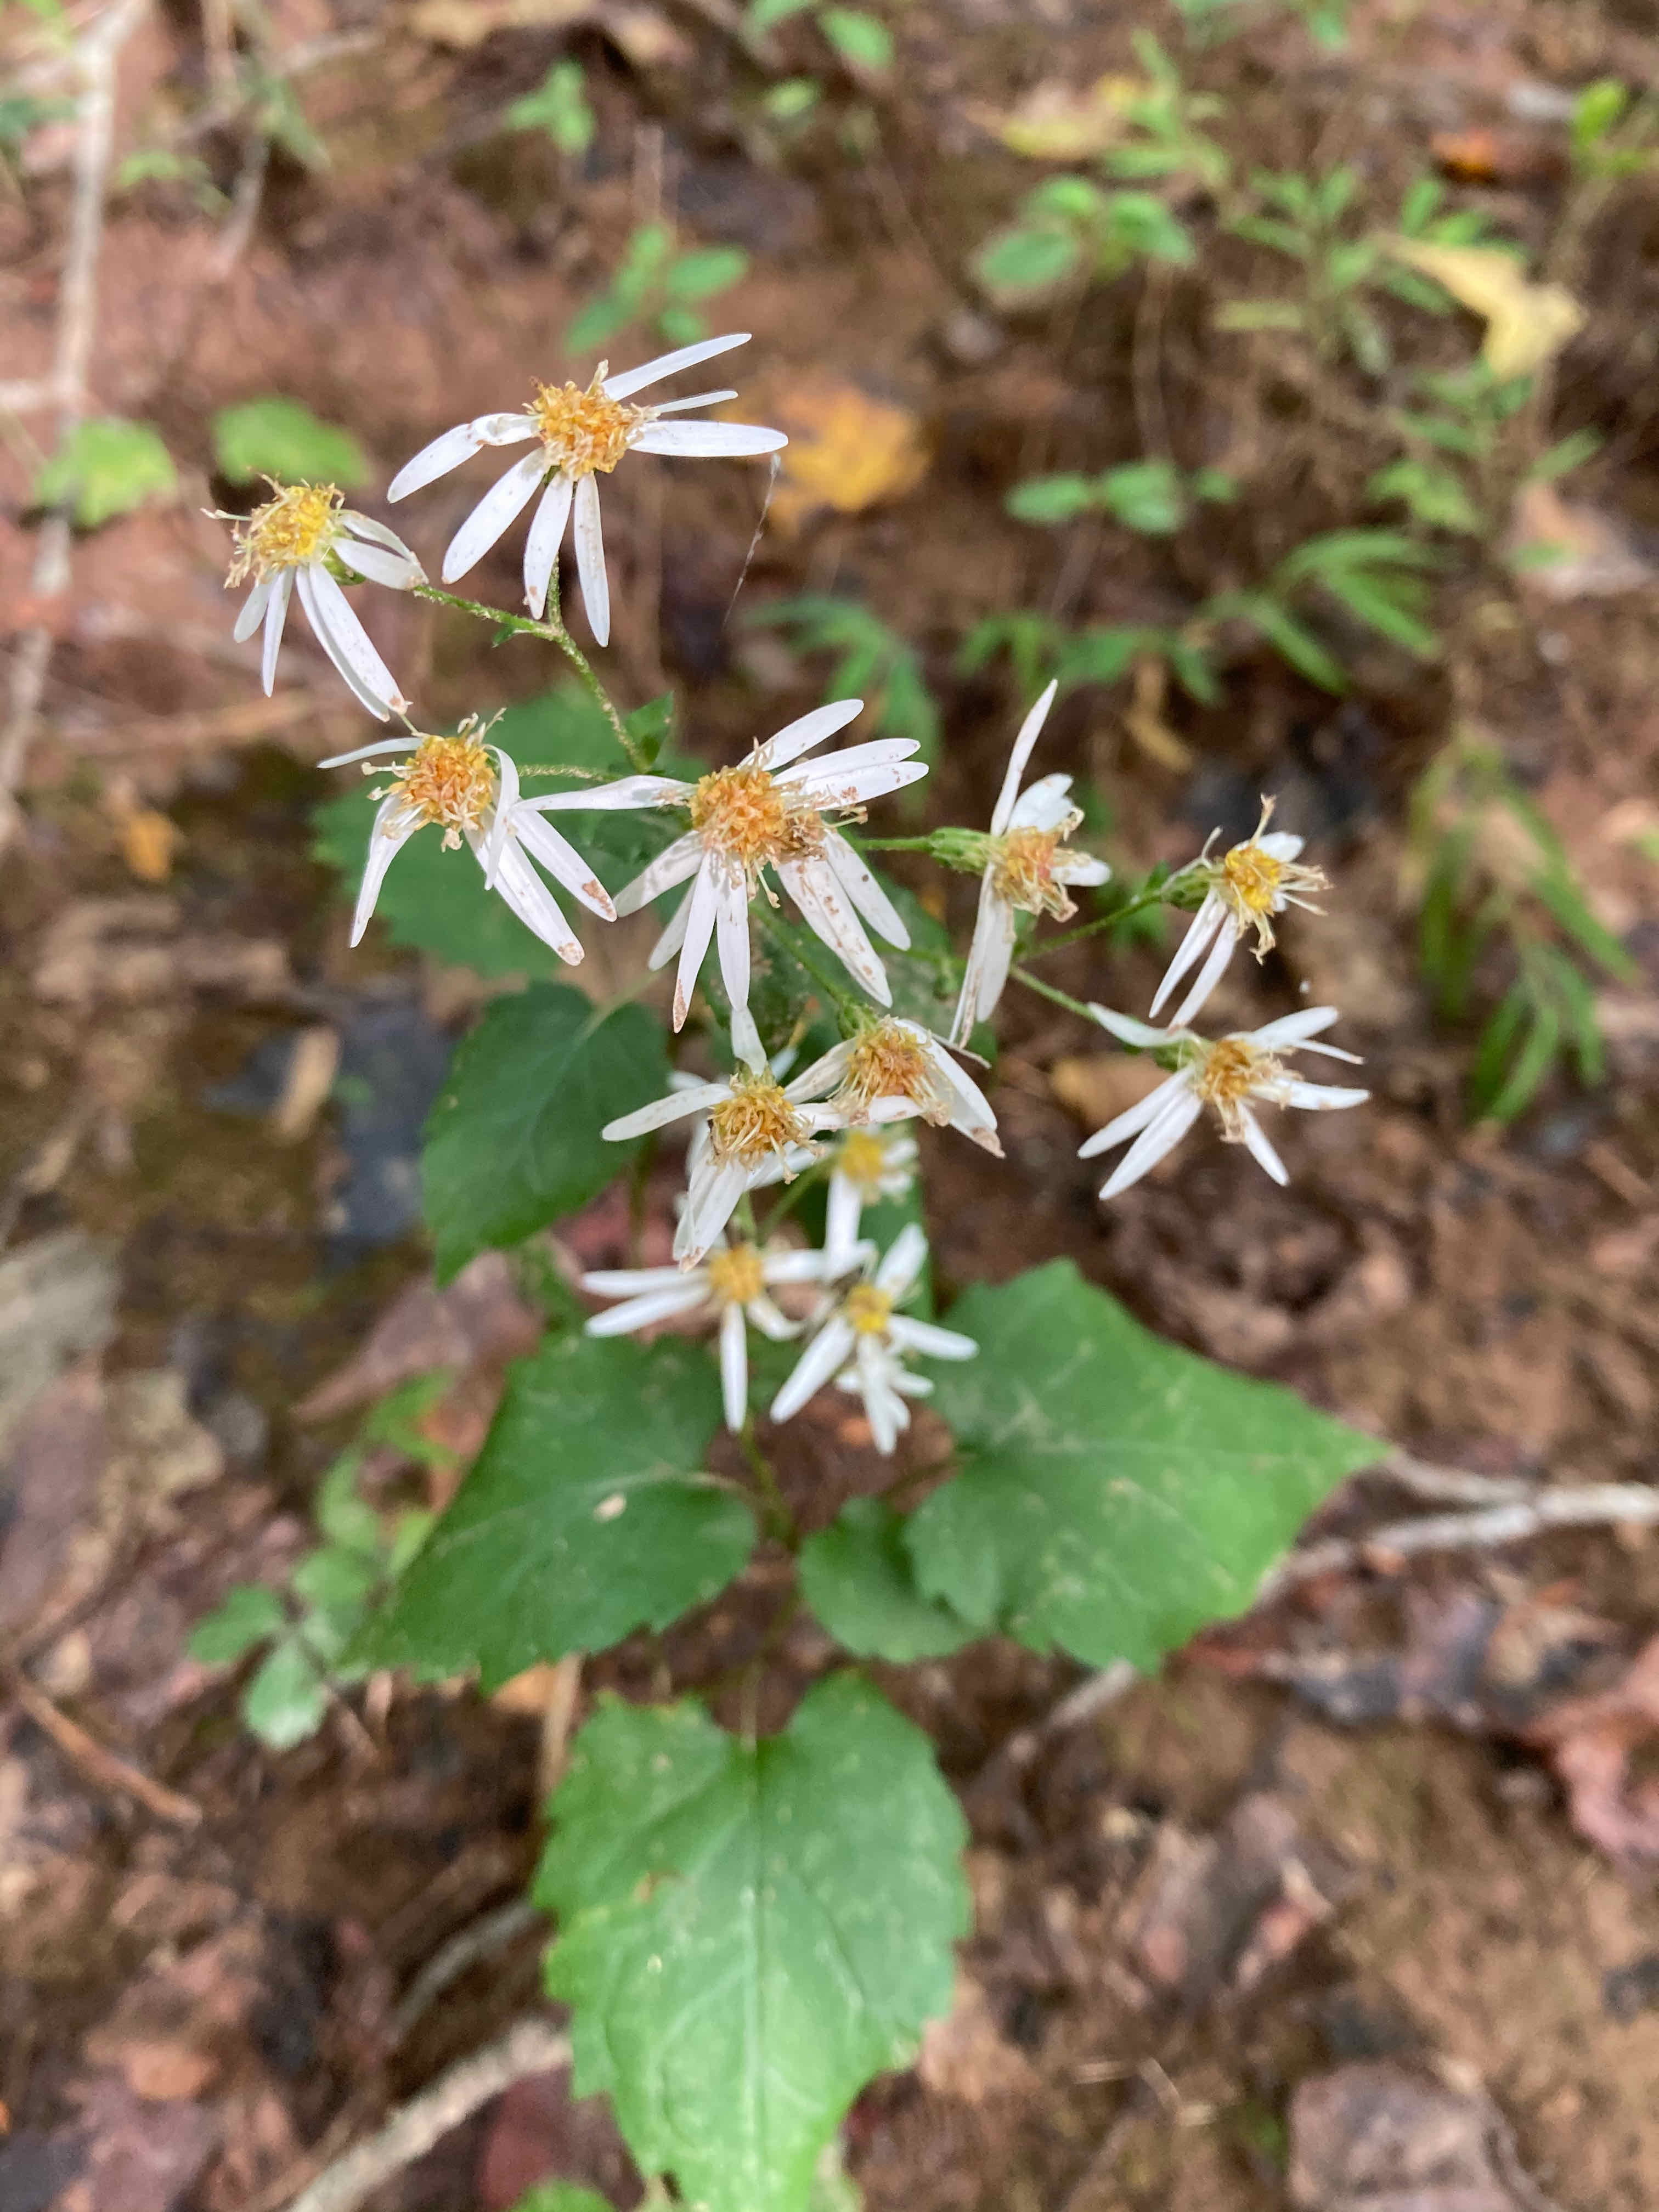 The Scientific Name is Eurybia divaricata [= Aster divaricatus]. You will likely hear them called White Wood Aster, Common White Heart-Leaved Aster. This picture shows the Has heart-shaped leaves with long stalks and long white ray florets of Eurybia divaricata [= Aster divaricatus]